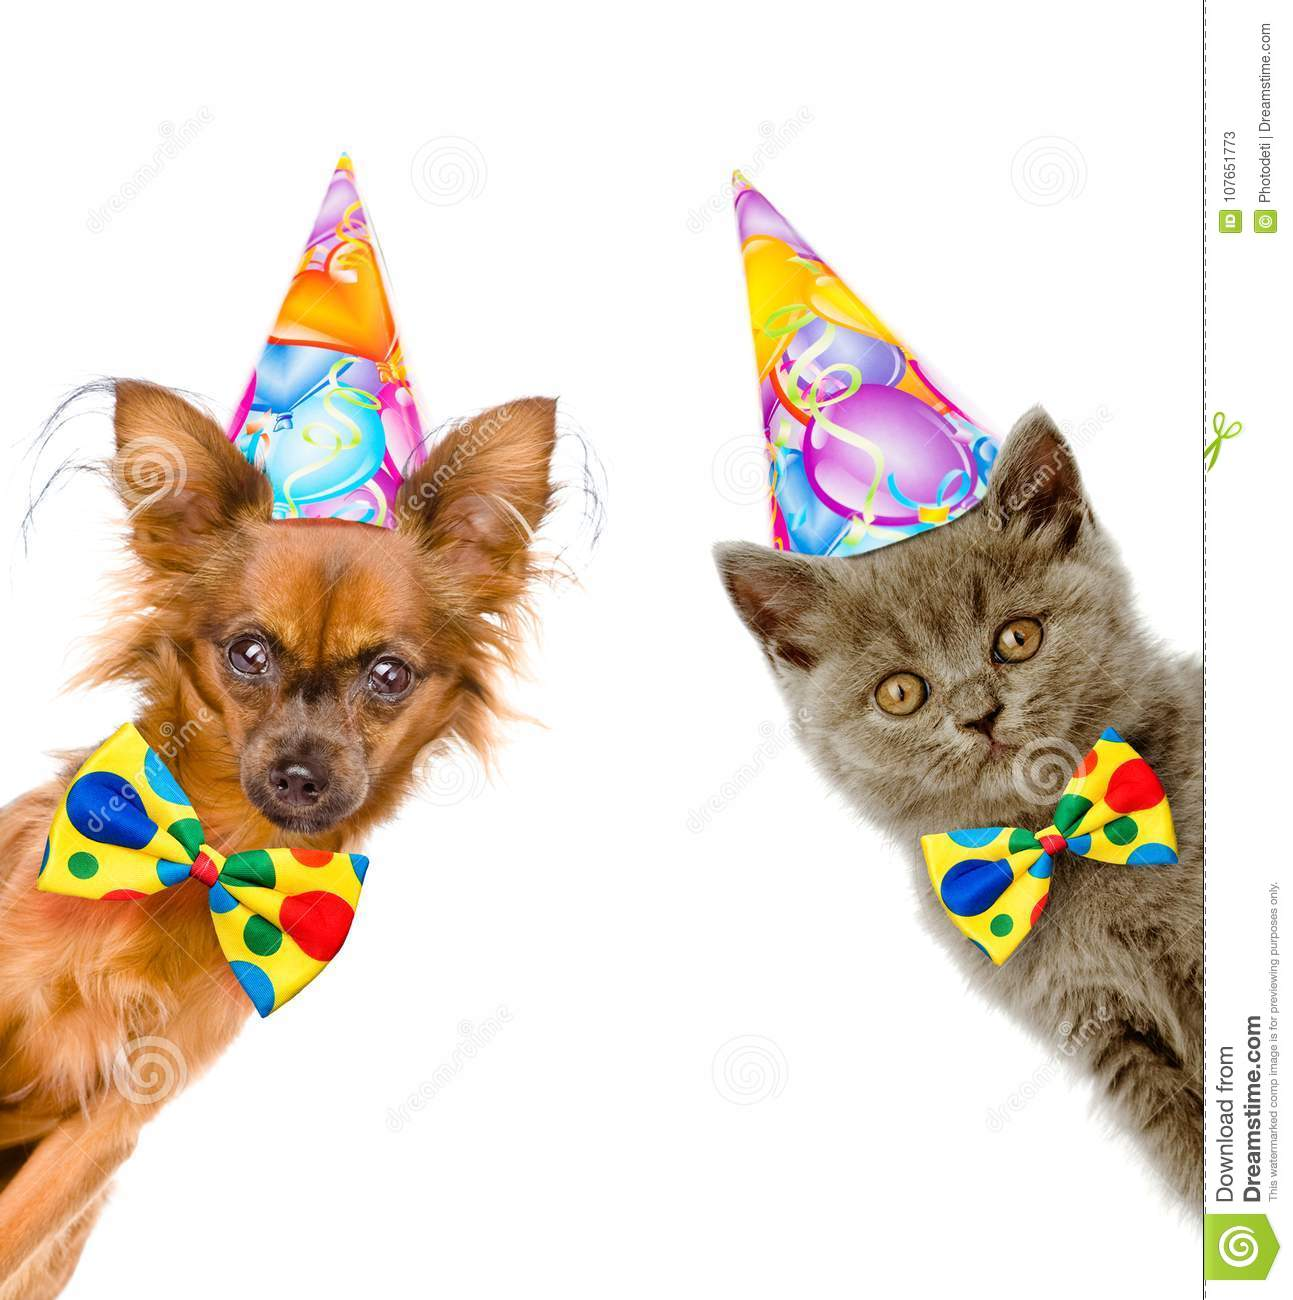 Cat And Dog In Birthday Hats With Bow Tie Look Out From Behind A Banner Isolated On White Background